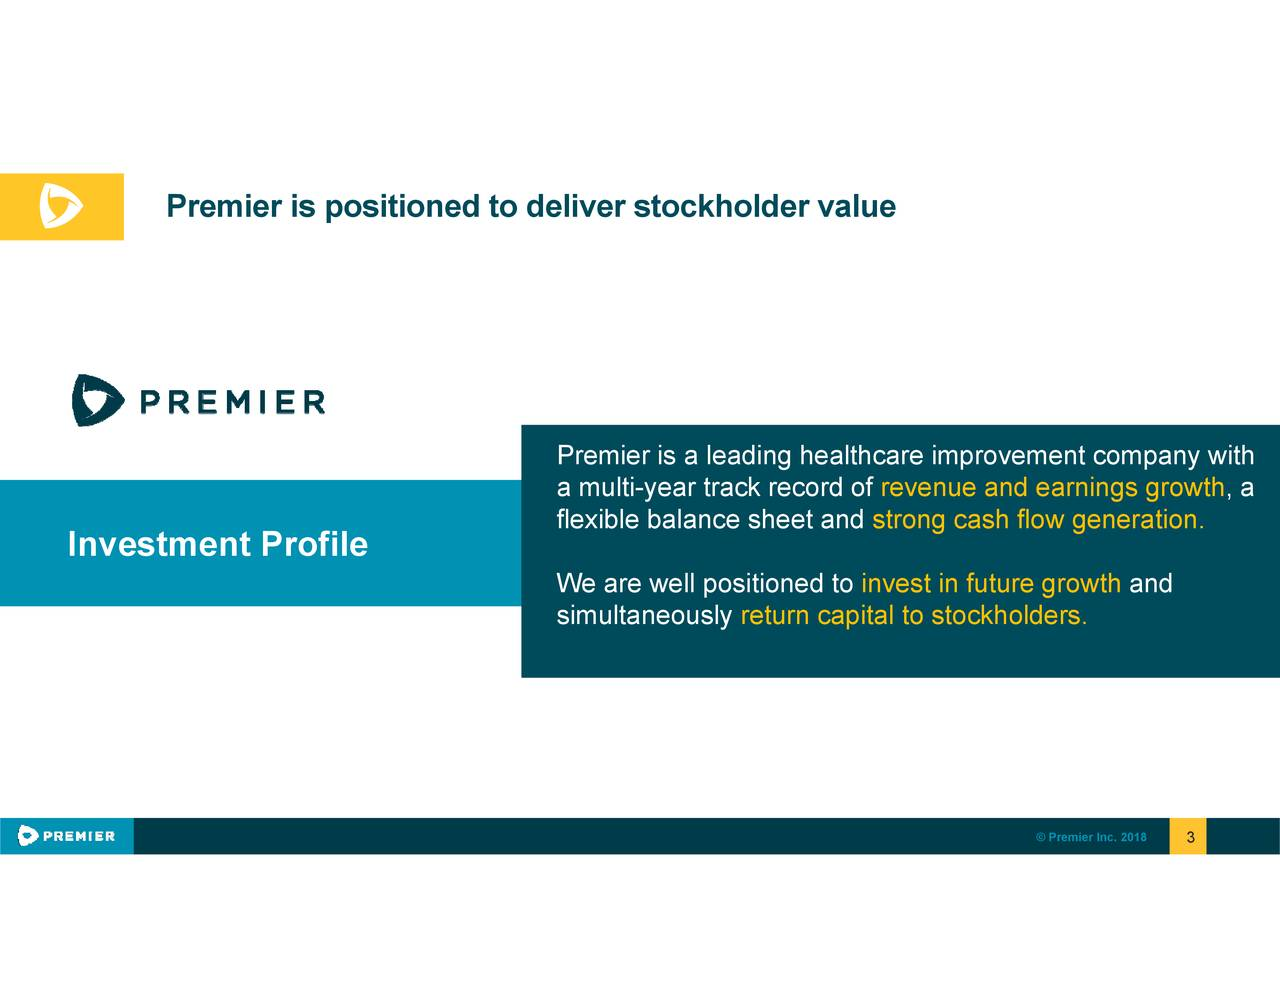 . 3 and © Premier Inc. 2018 revstroninvest in future growth return capital to stockholders. Prammiurl-aelrtrick realrdcafre improvement company with ® Premier is positioned to deliver stockholder value Investment Profile TRANSFORMING HEALTHCARE TOGETHER